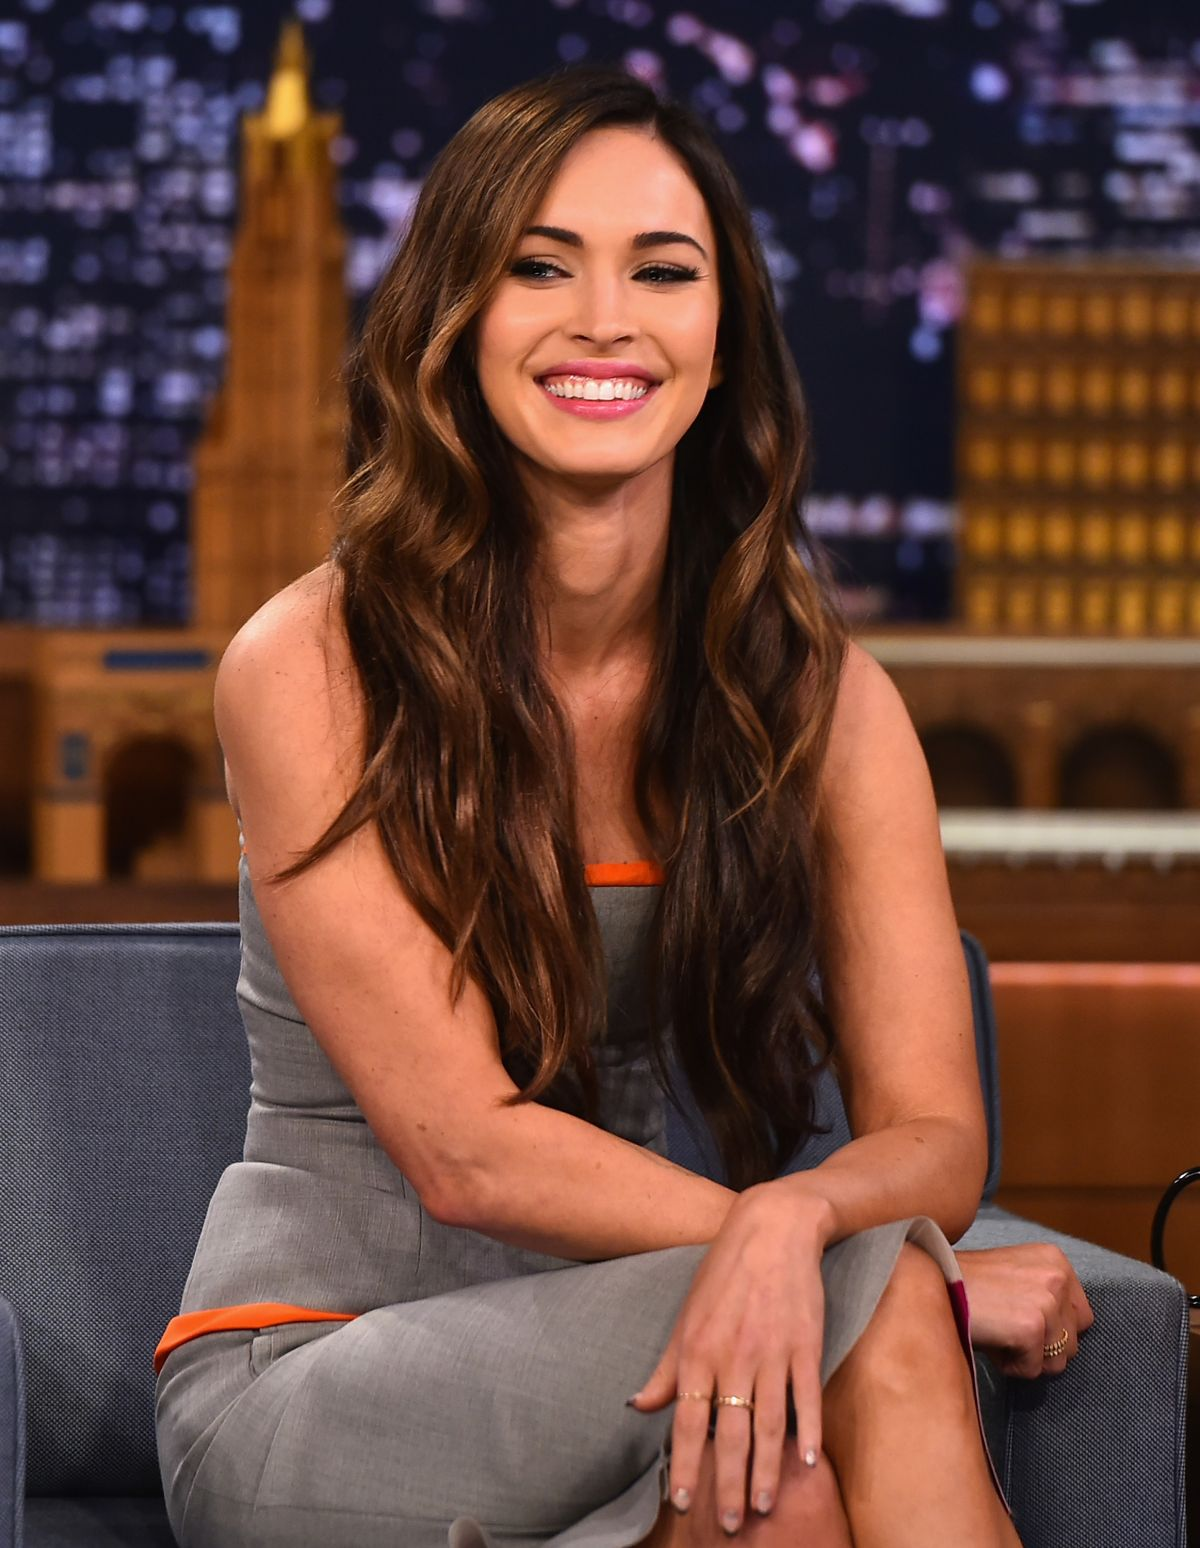 MEGAN FOX at The Tonight Show Starring Jimmy Fallon in New York